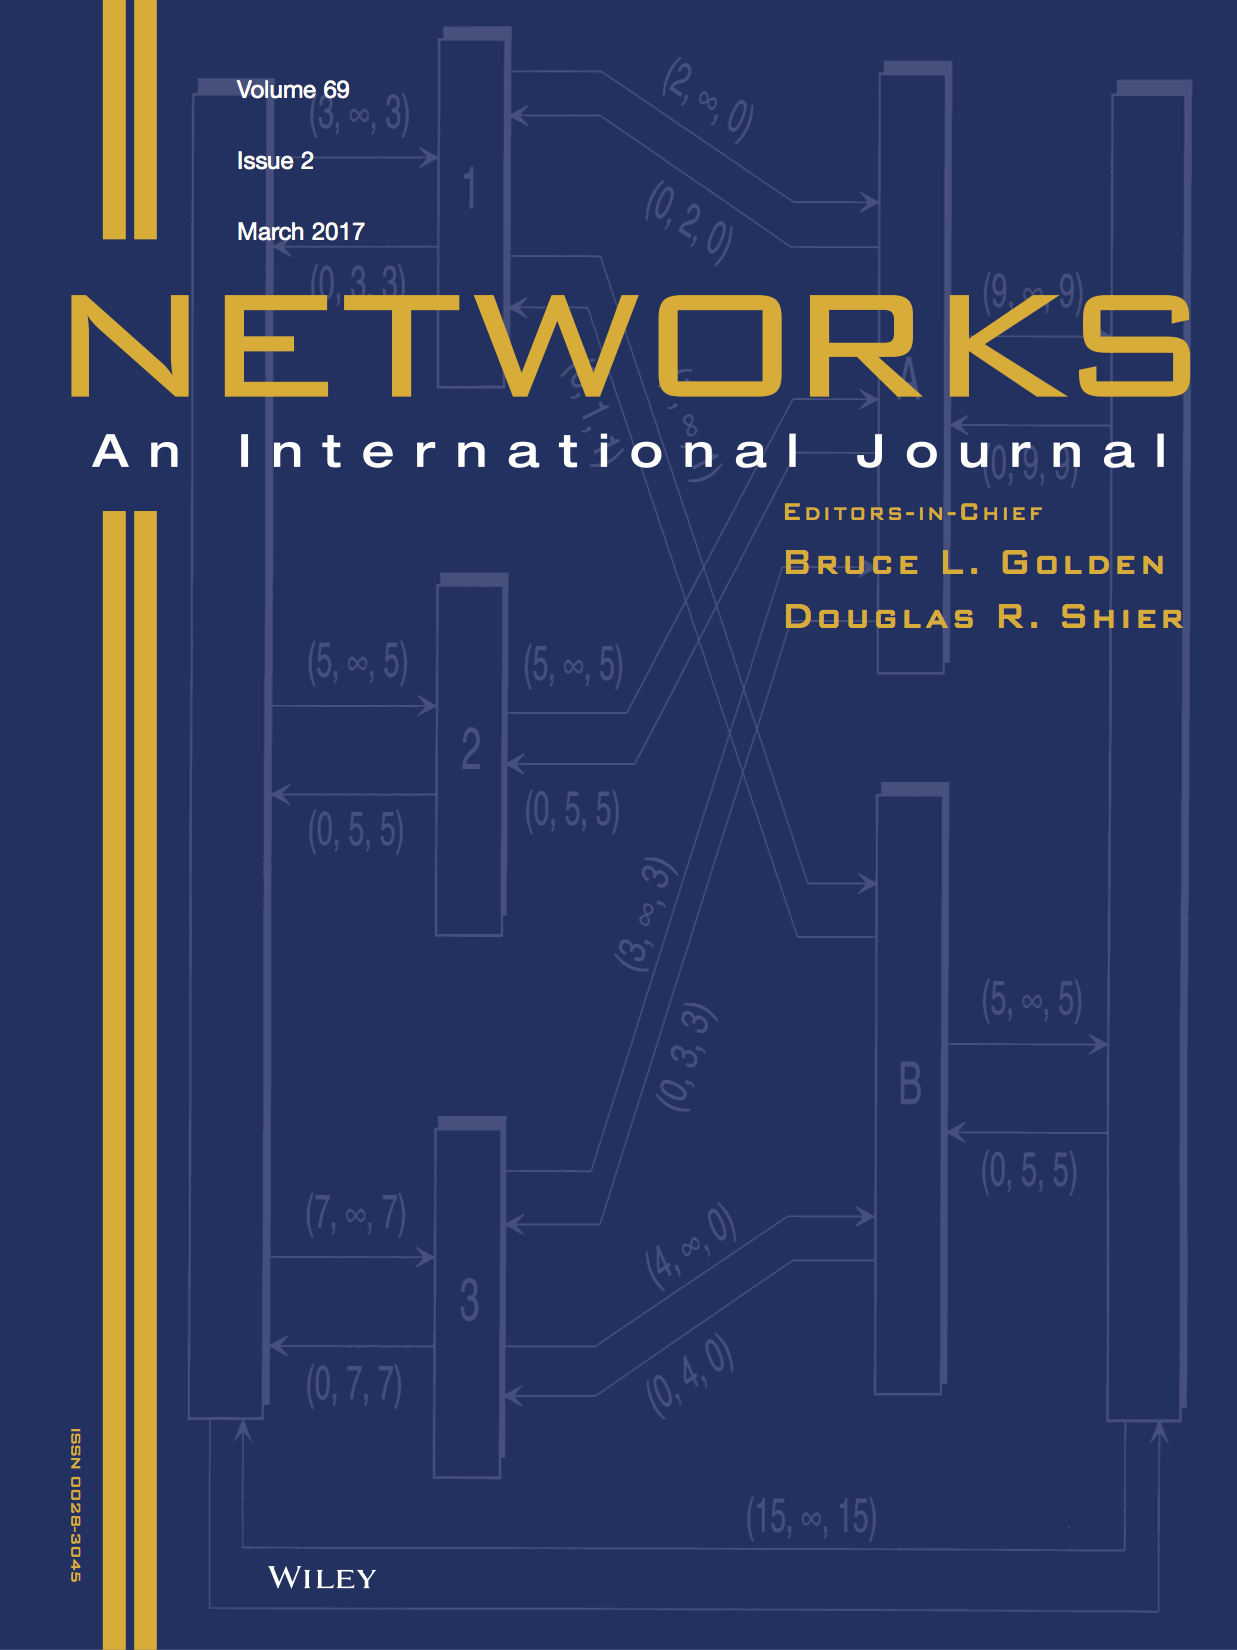 Template for submissions to networks an international journal template for submissions to networks an international journal ccuart Choice Image